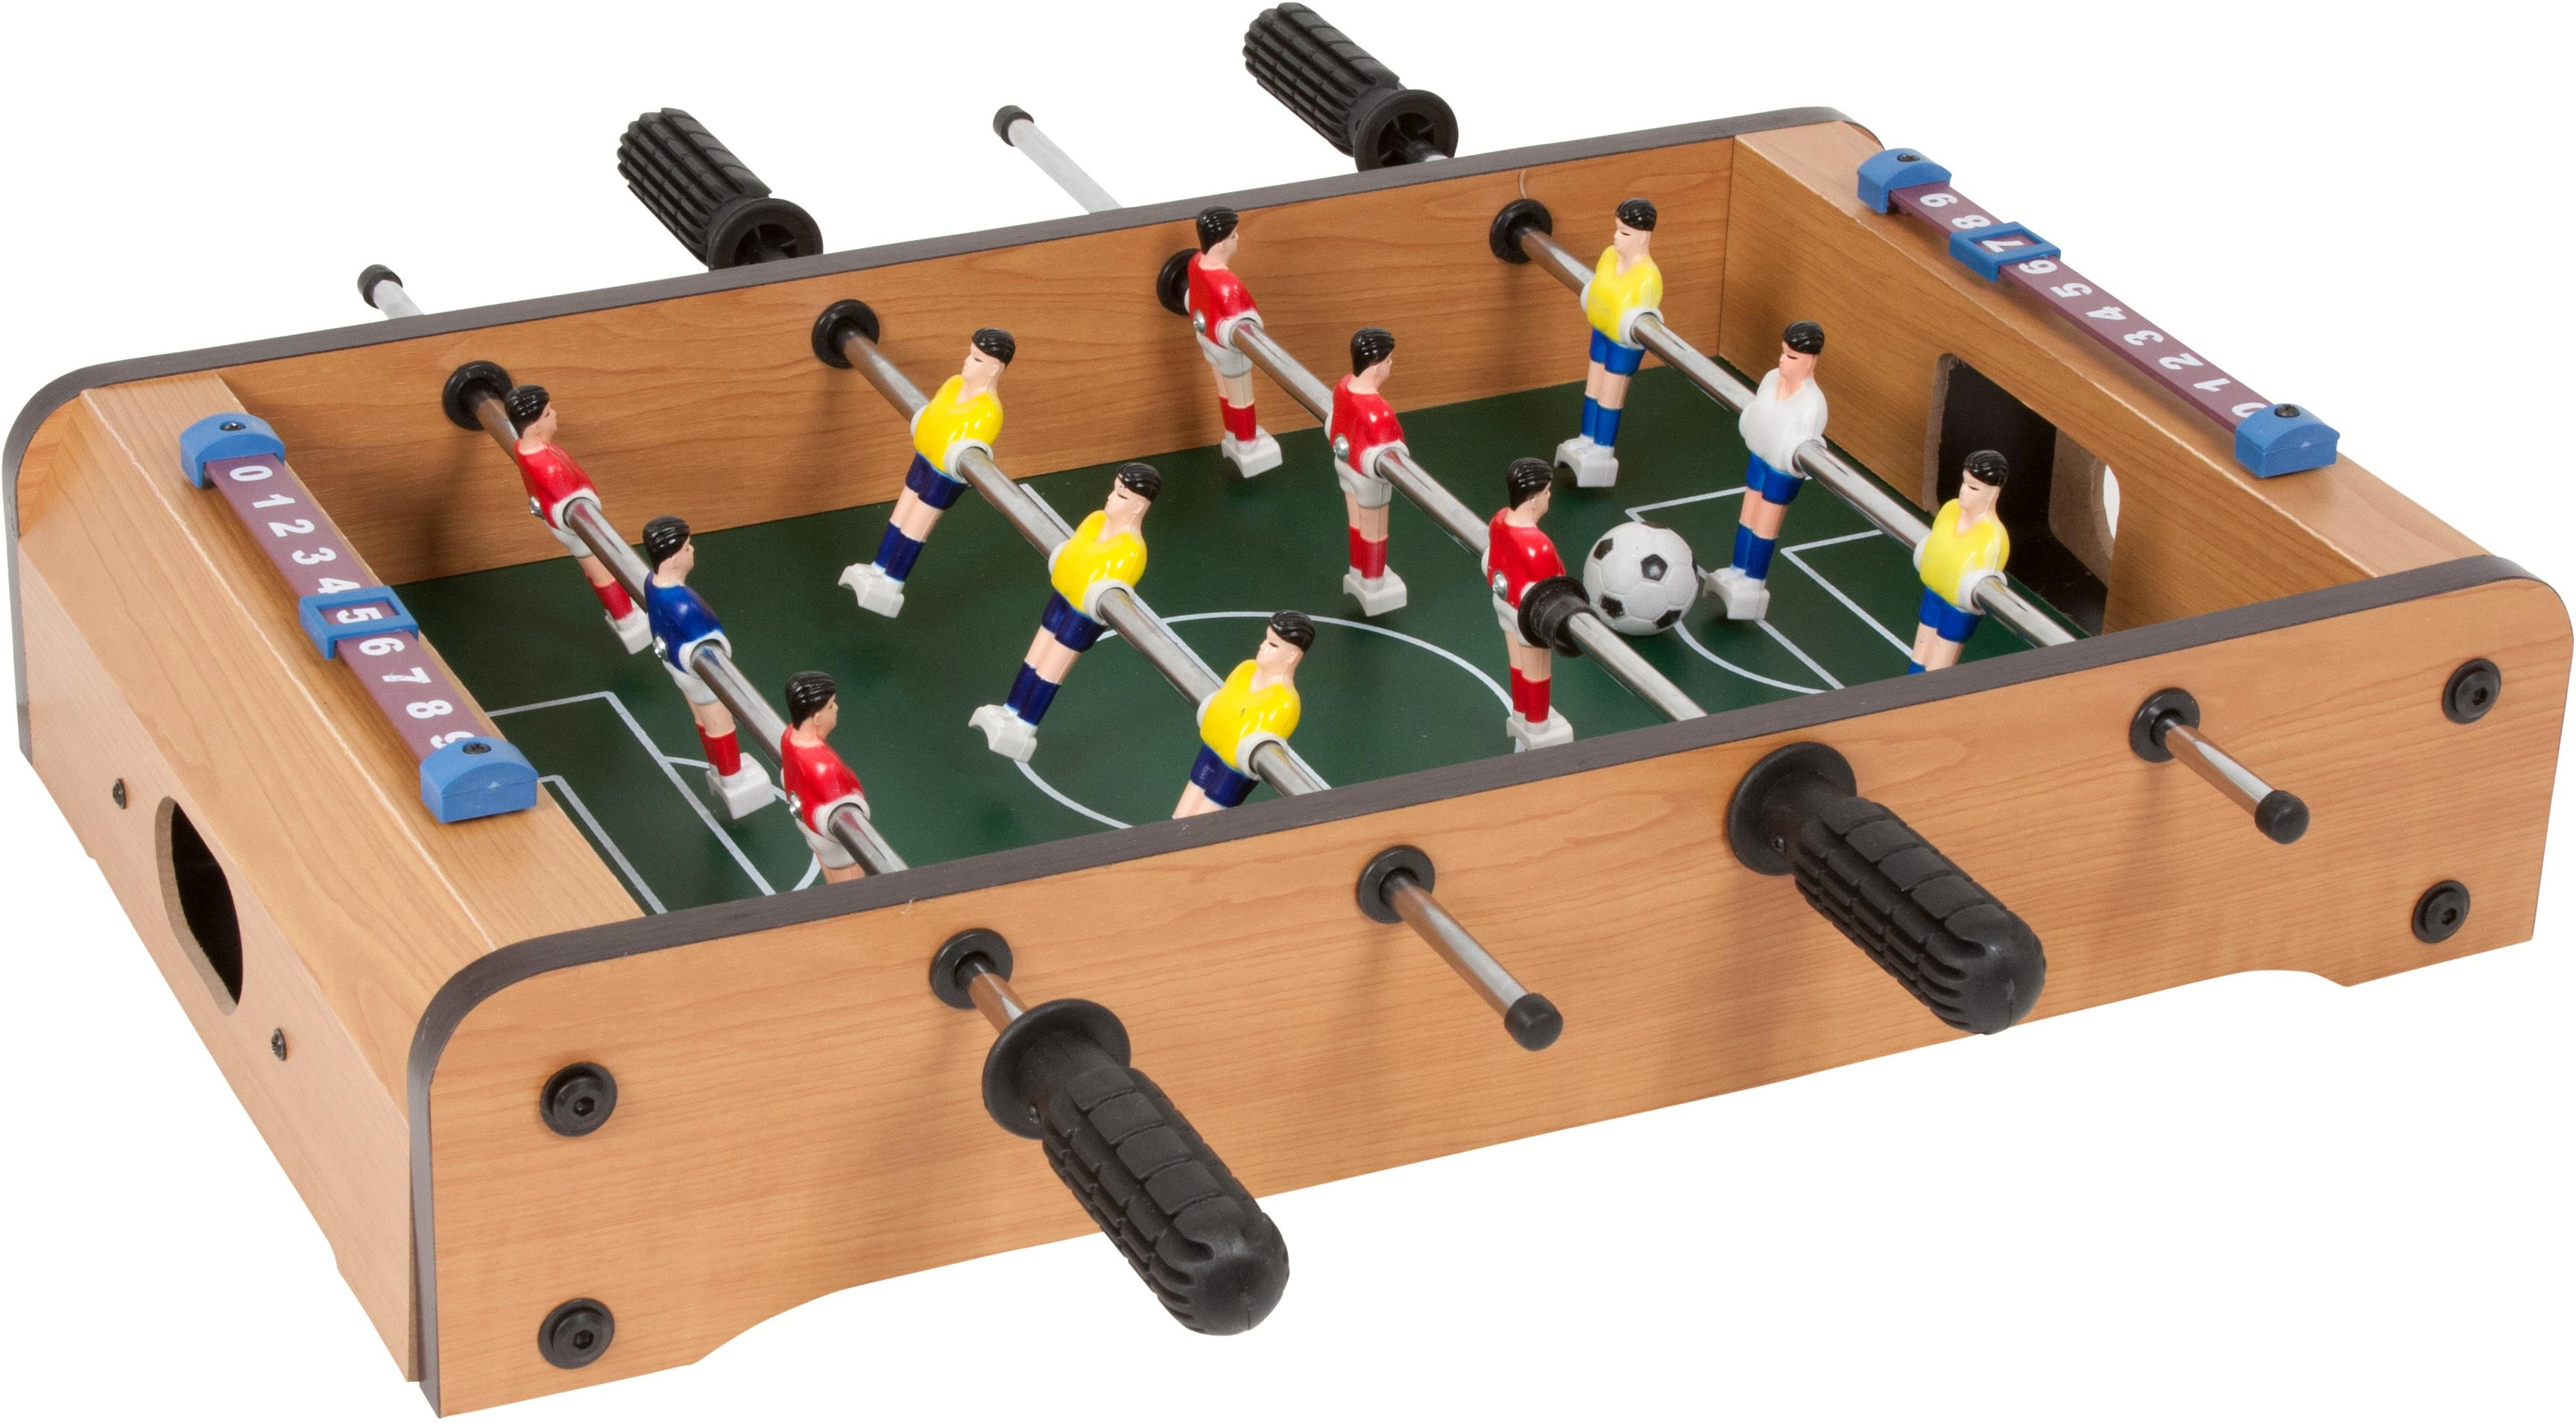 Where Did the Name Foosball Come From